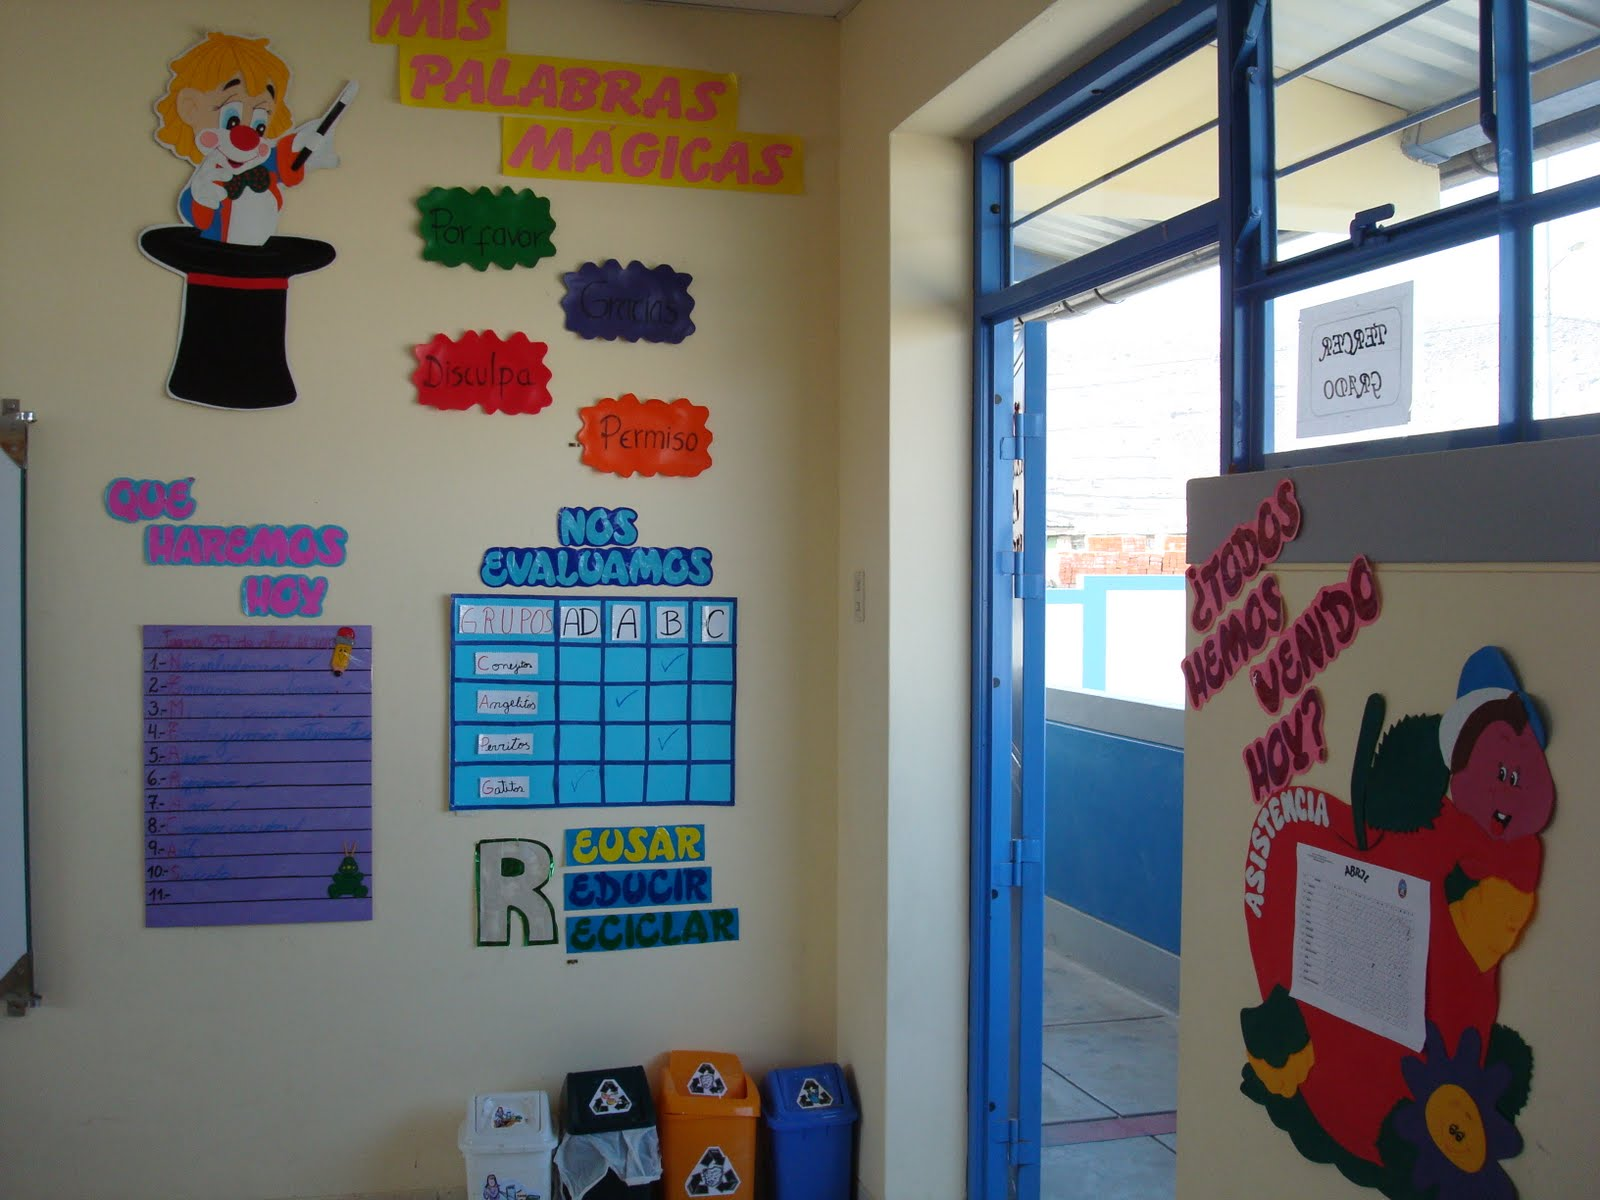 Decoracion salon de clases primaria for Decoracion para pared de salon